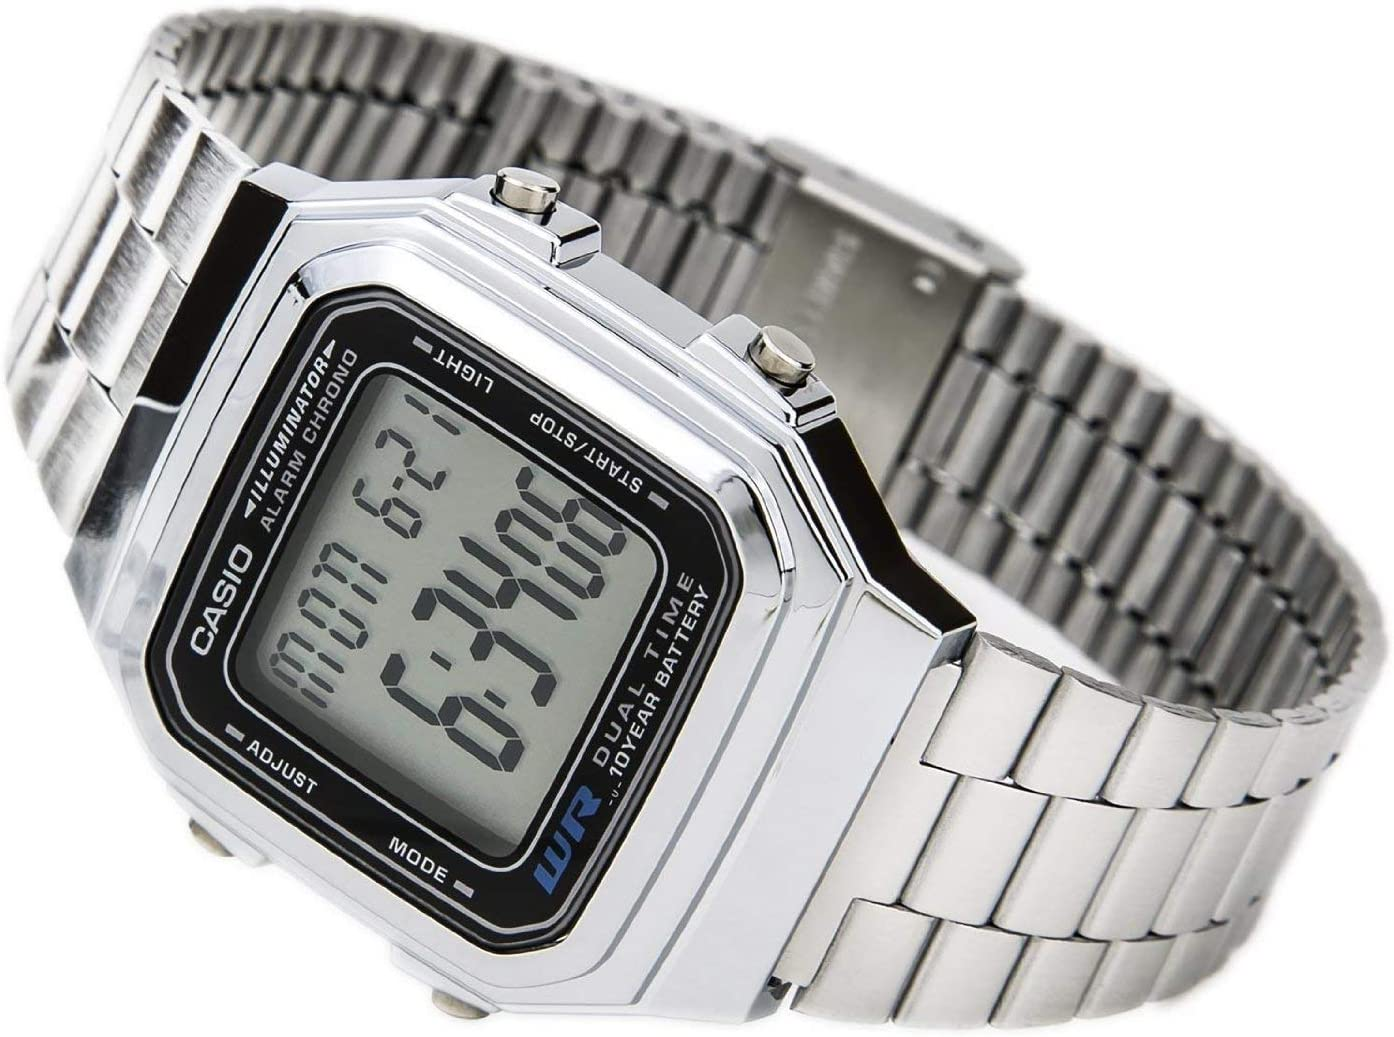 Casio Water Resistant Illuminator Bracelet Mens Digital Watch, with Multi-Function Alarm with Snooze and Stopwatch, Auto Calender Features, Water Resistant, Metal Band